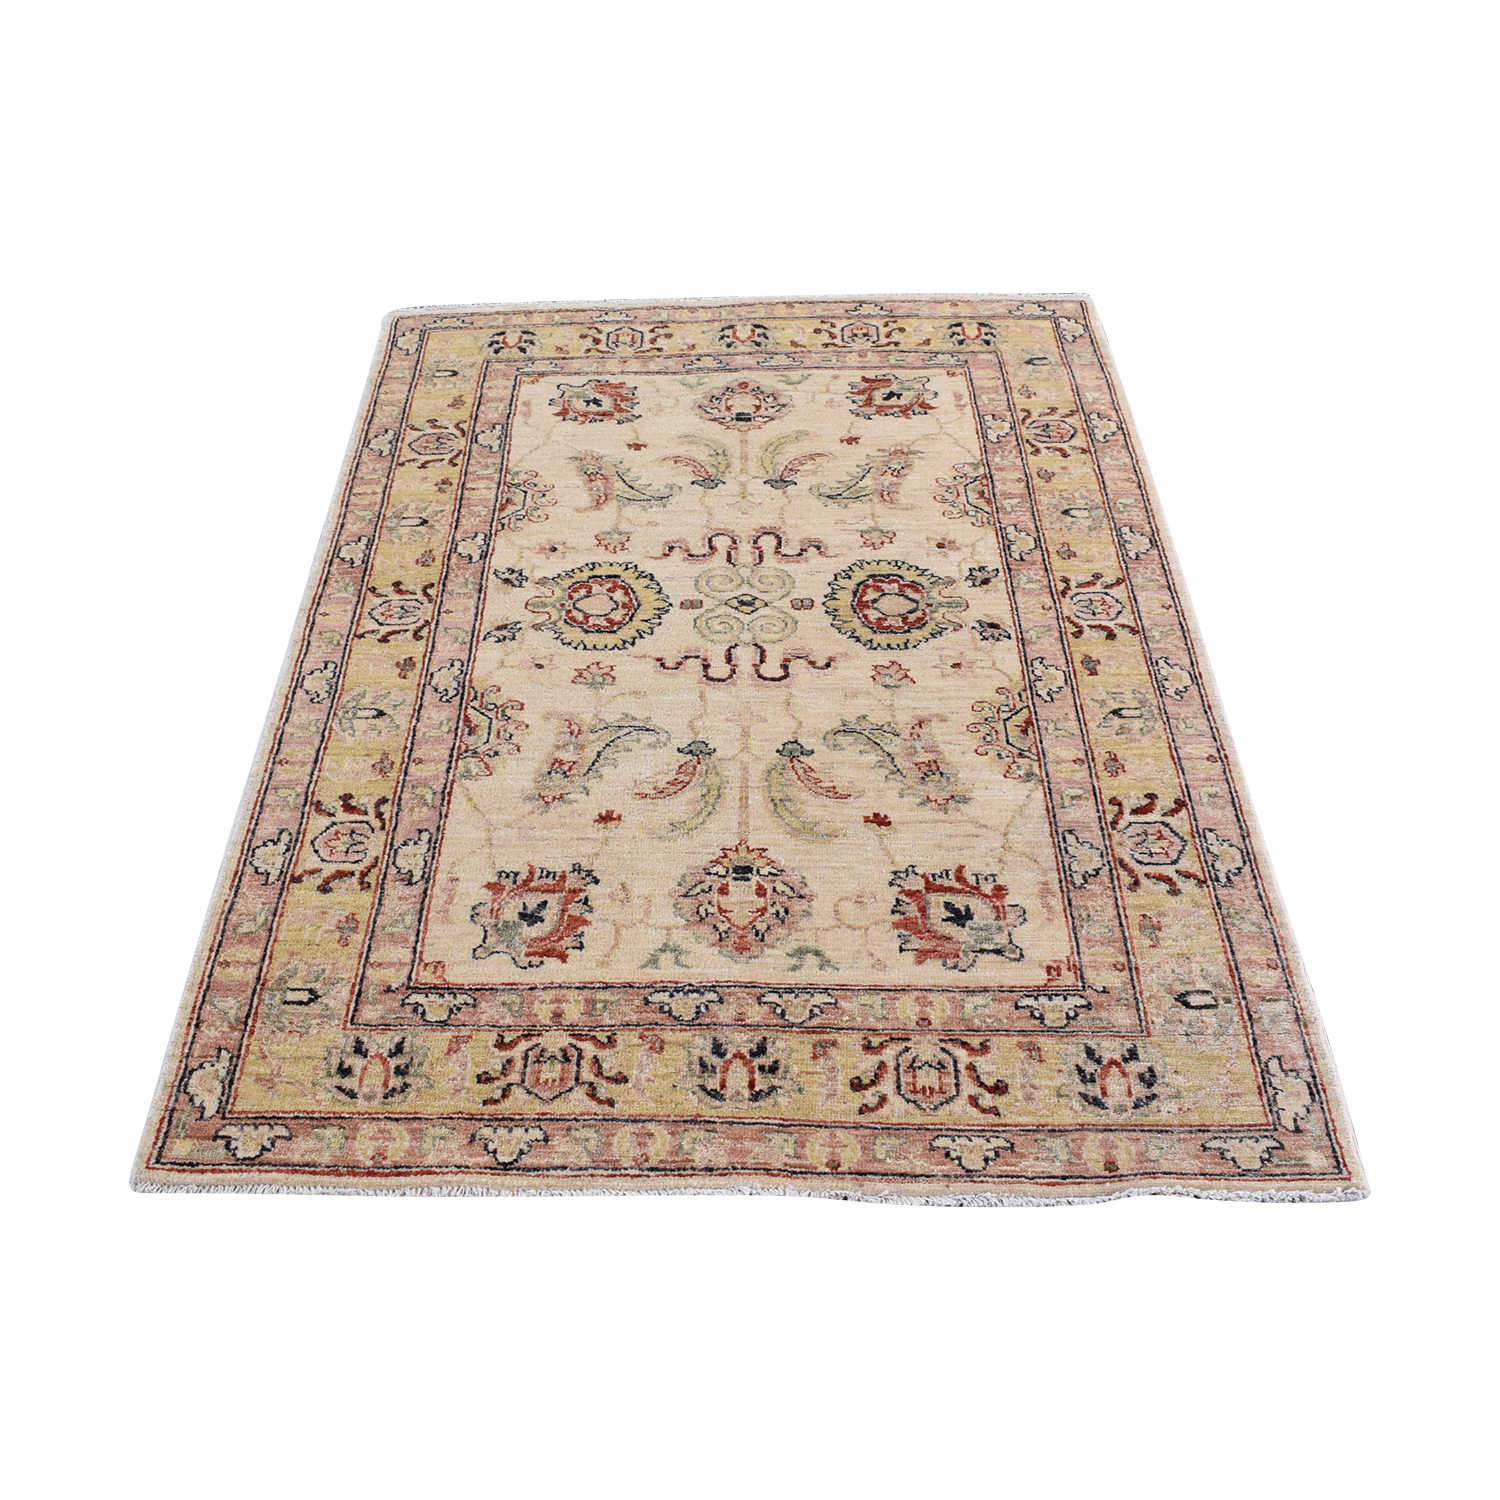 Wayfair Wayfair Area Rug dimensions